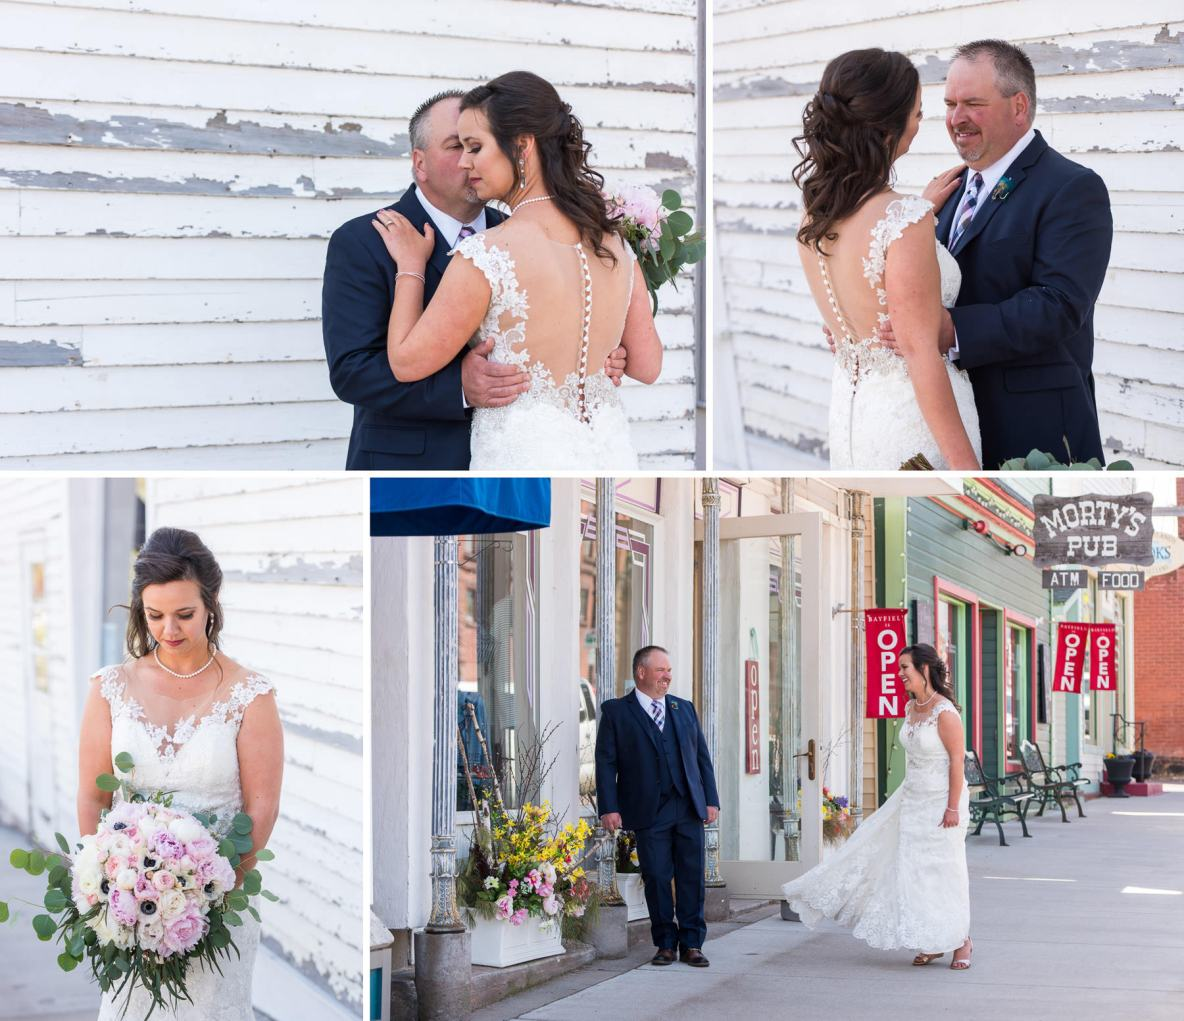 Bride and groom portraits outside in front of old building in Bayfield, WI.